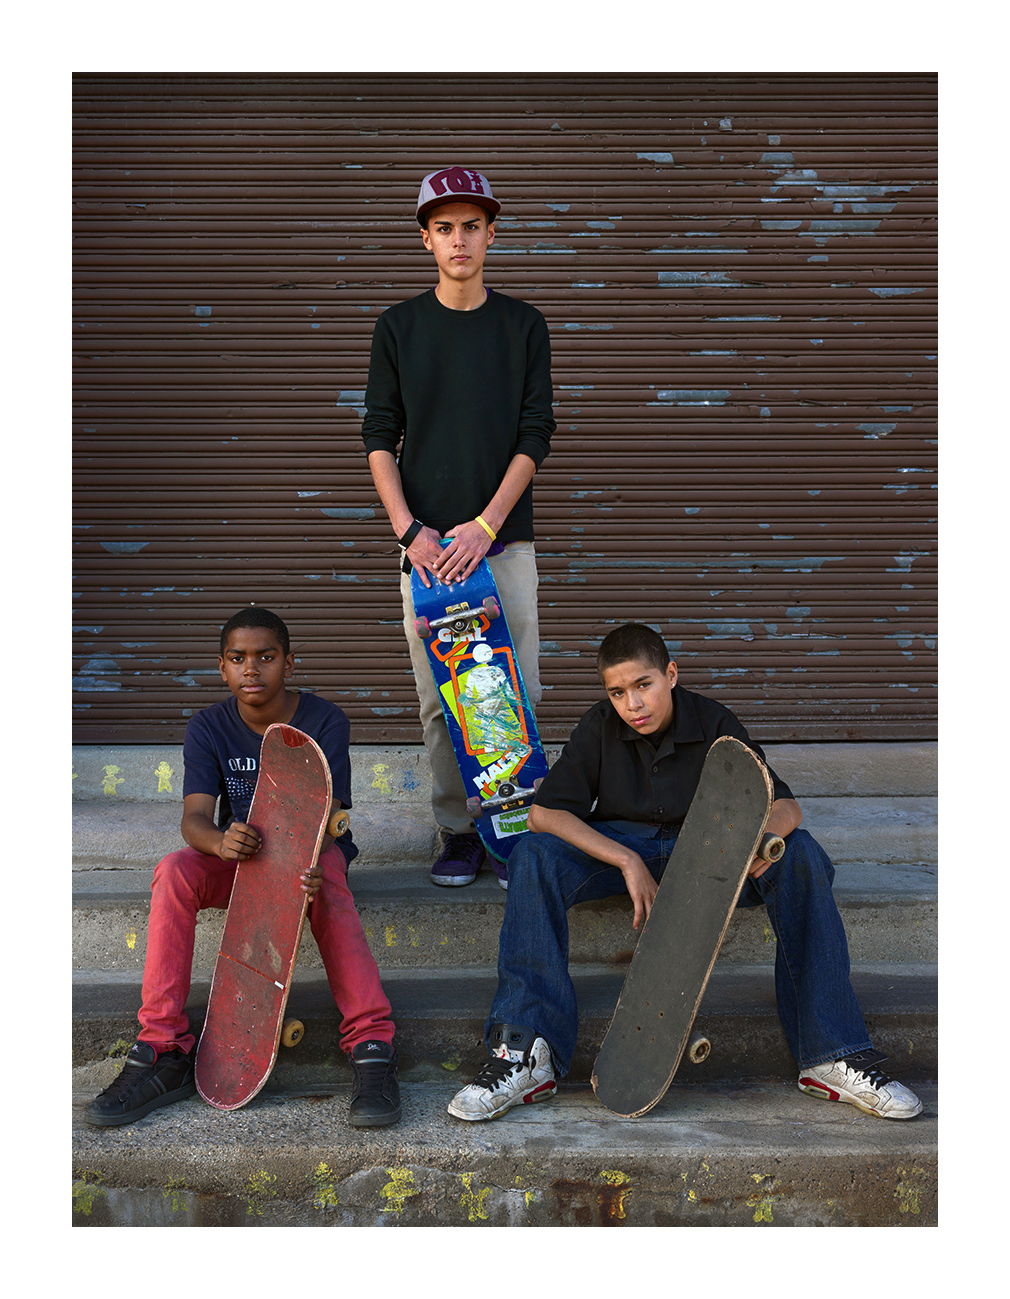 Three Young Men with Skateboards, Junction Street, Mexicantown, Detroit 2011